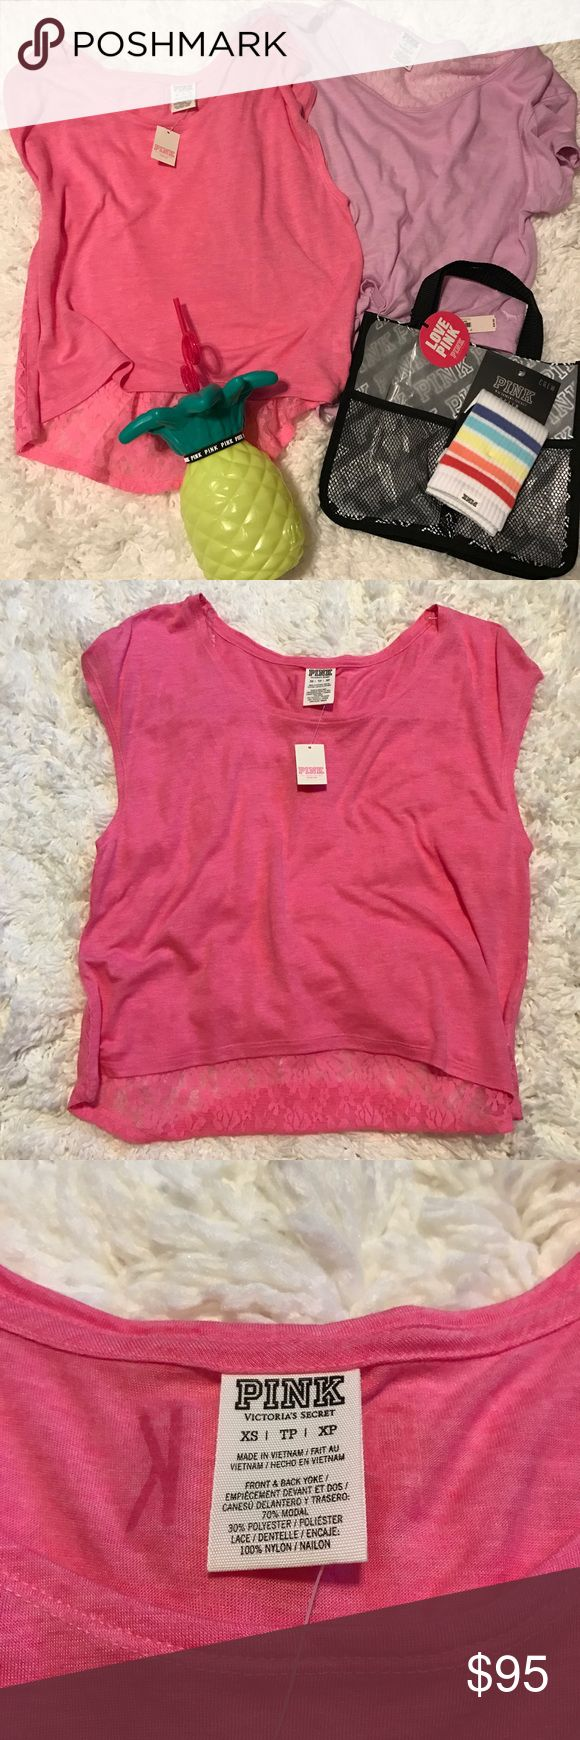 PINK Summer Travel Bundle! Perfect PINK Victoria's Secret bundle for the summer!  Includes:  1 bralette (small)  Pineapple cup Black and white logo Bath/shower caddy Rainbow Crew socks Lilac Slouchy Top (xs) Pink Lace top (xs)  All PINK! Everything is NWT except the lilac Top and bralette which are NWOT!  All will fit a small or xs! PINK Victoria's Secret Tops Tees - Short Sleeve